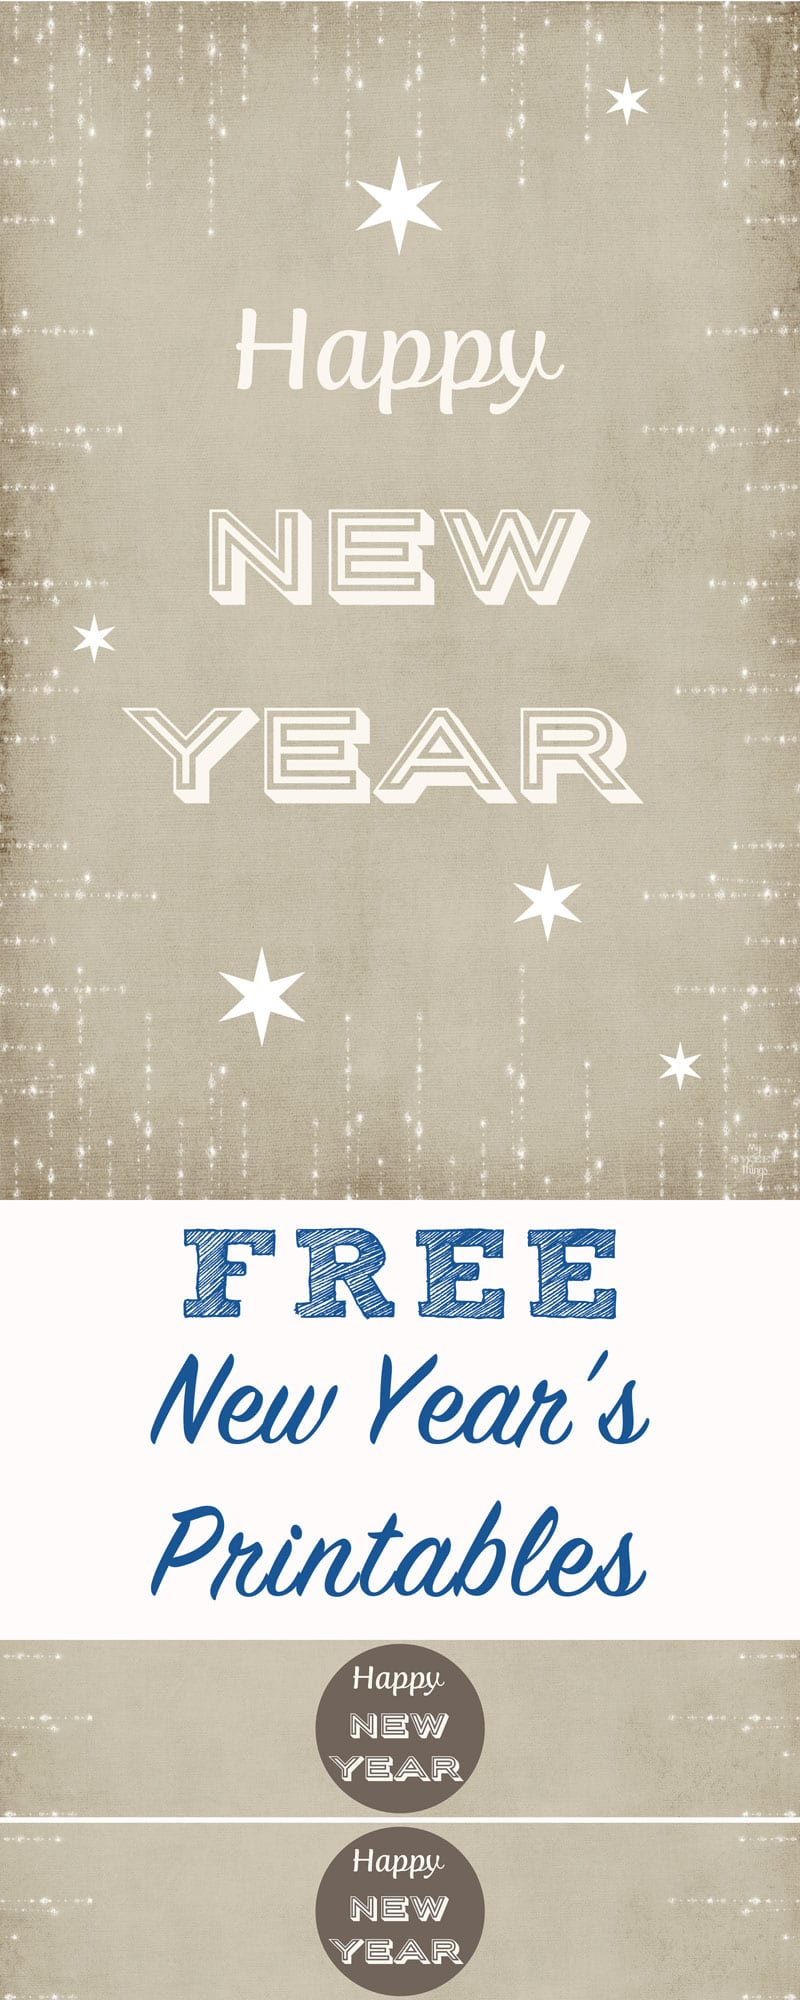 Free New Year's Printables   |    Free download and ready to print to add some decor to your party   |   Via www.sweethings.net